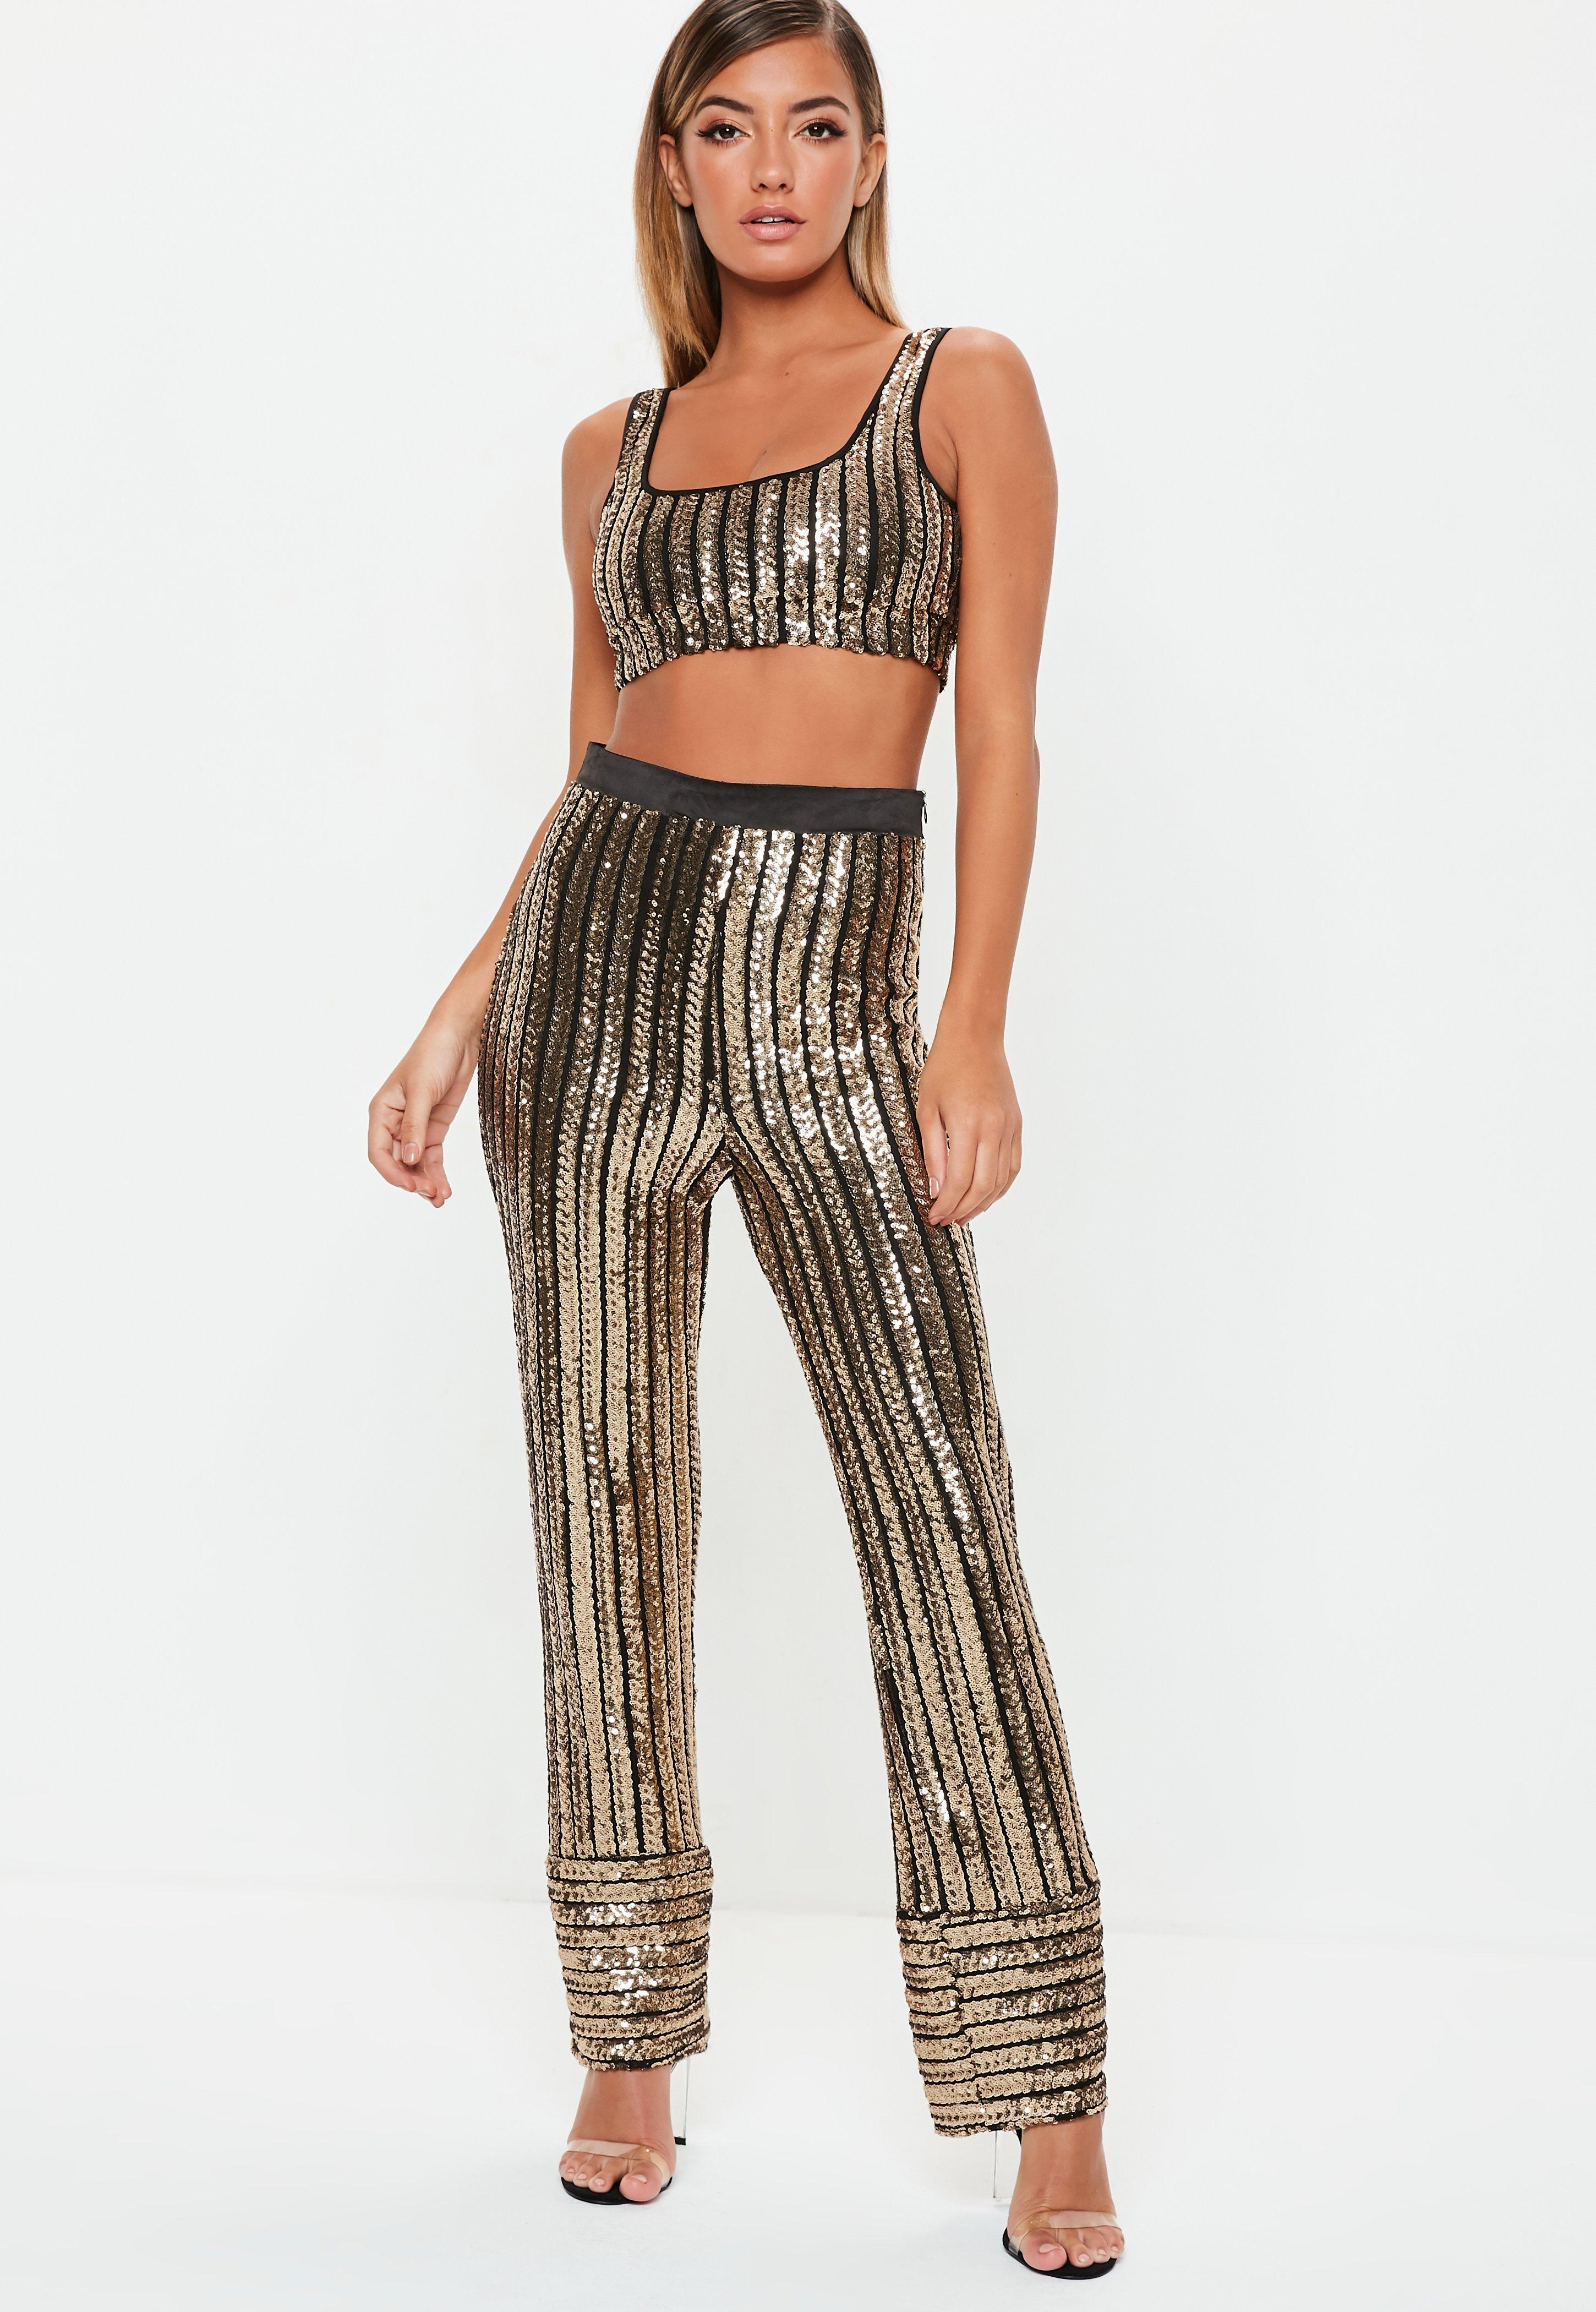 e4b379da813e78 Missguided - Petite Black And Gold Sequin Stripe Bralet - Lyst. View  fullscreen